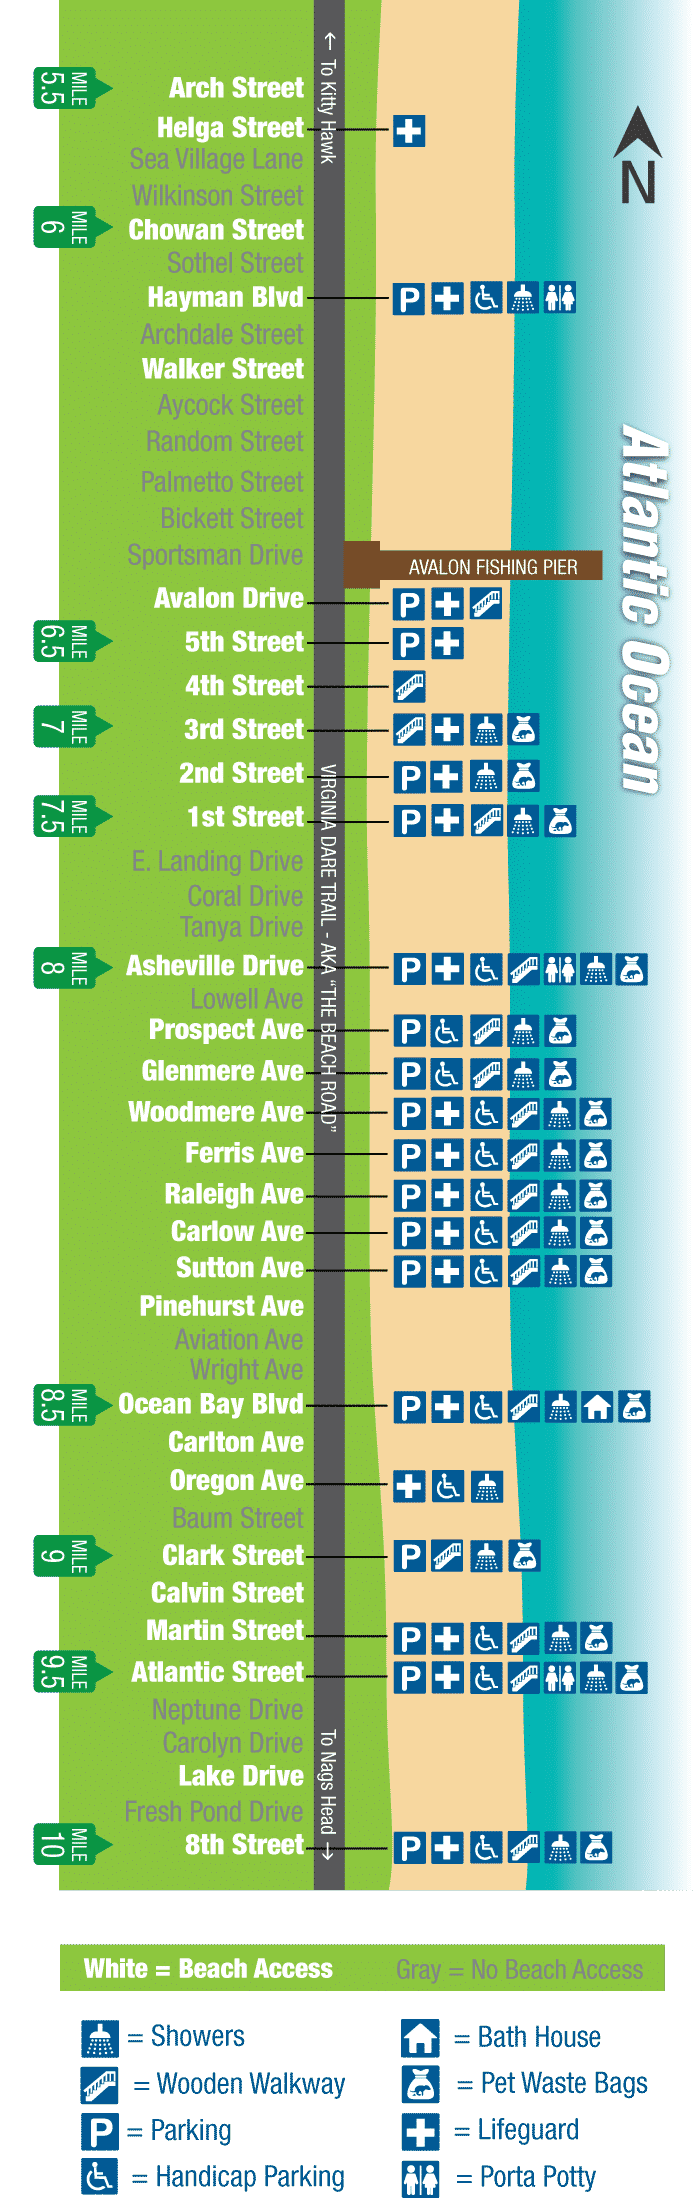 Kill Devil Hills Beach Access Map